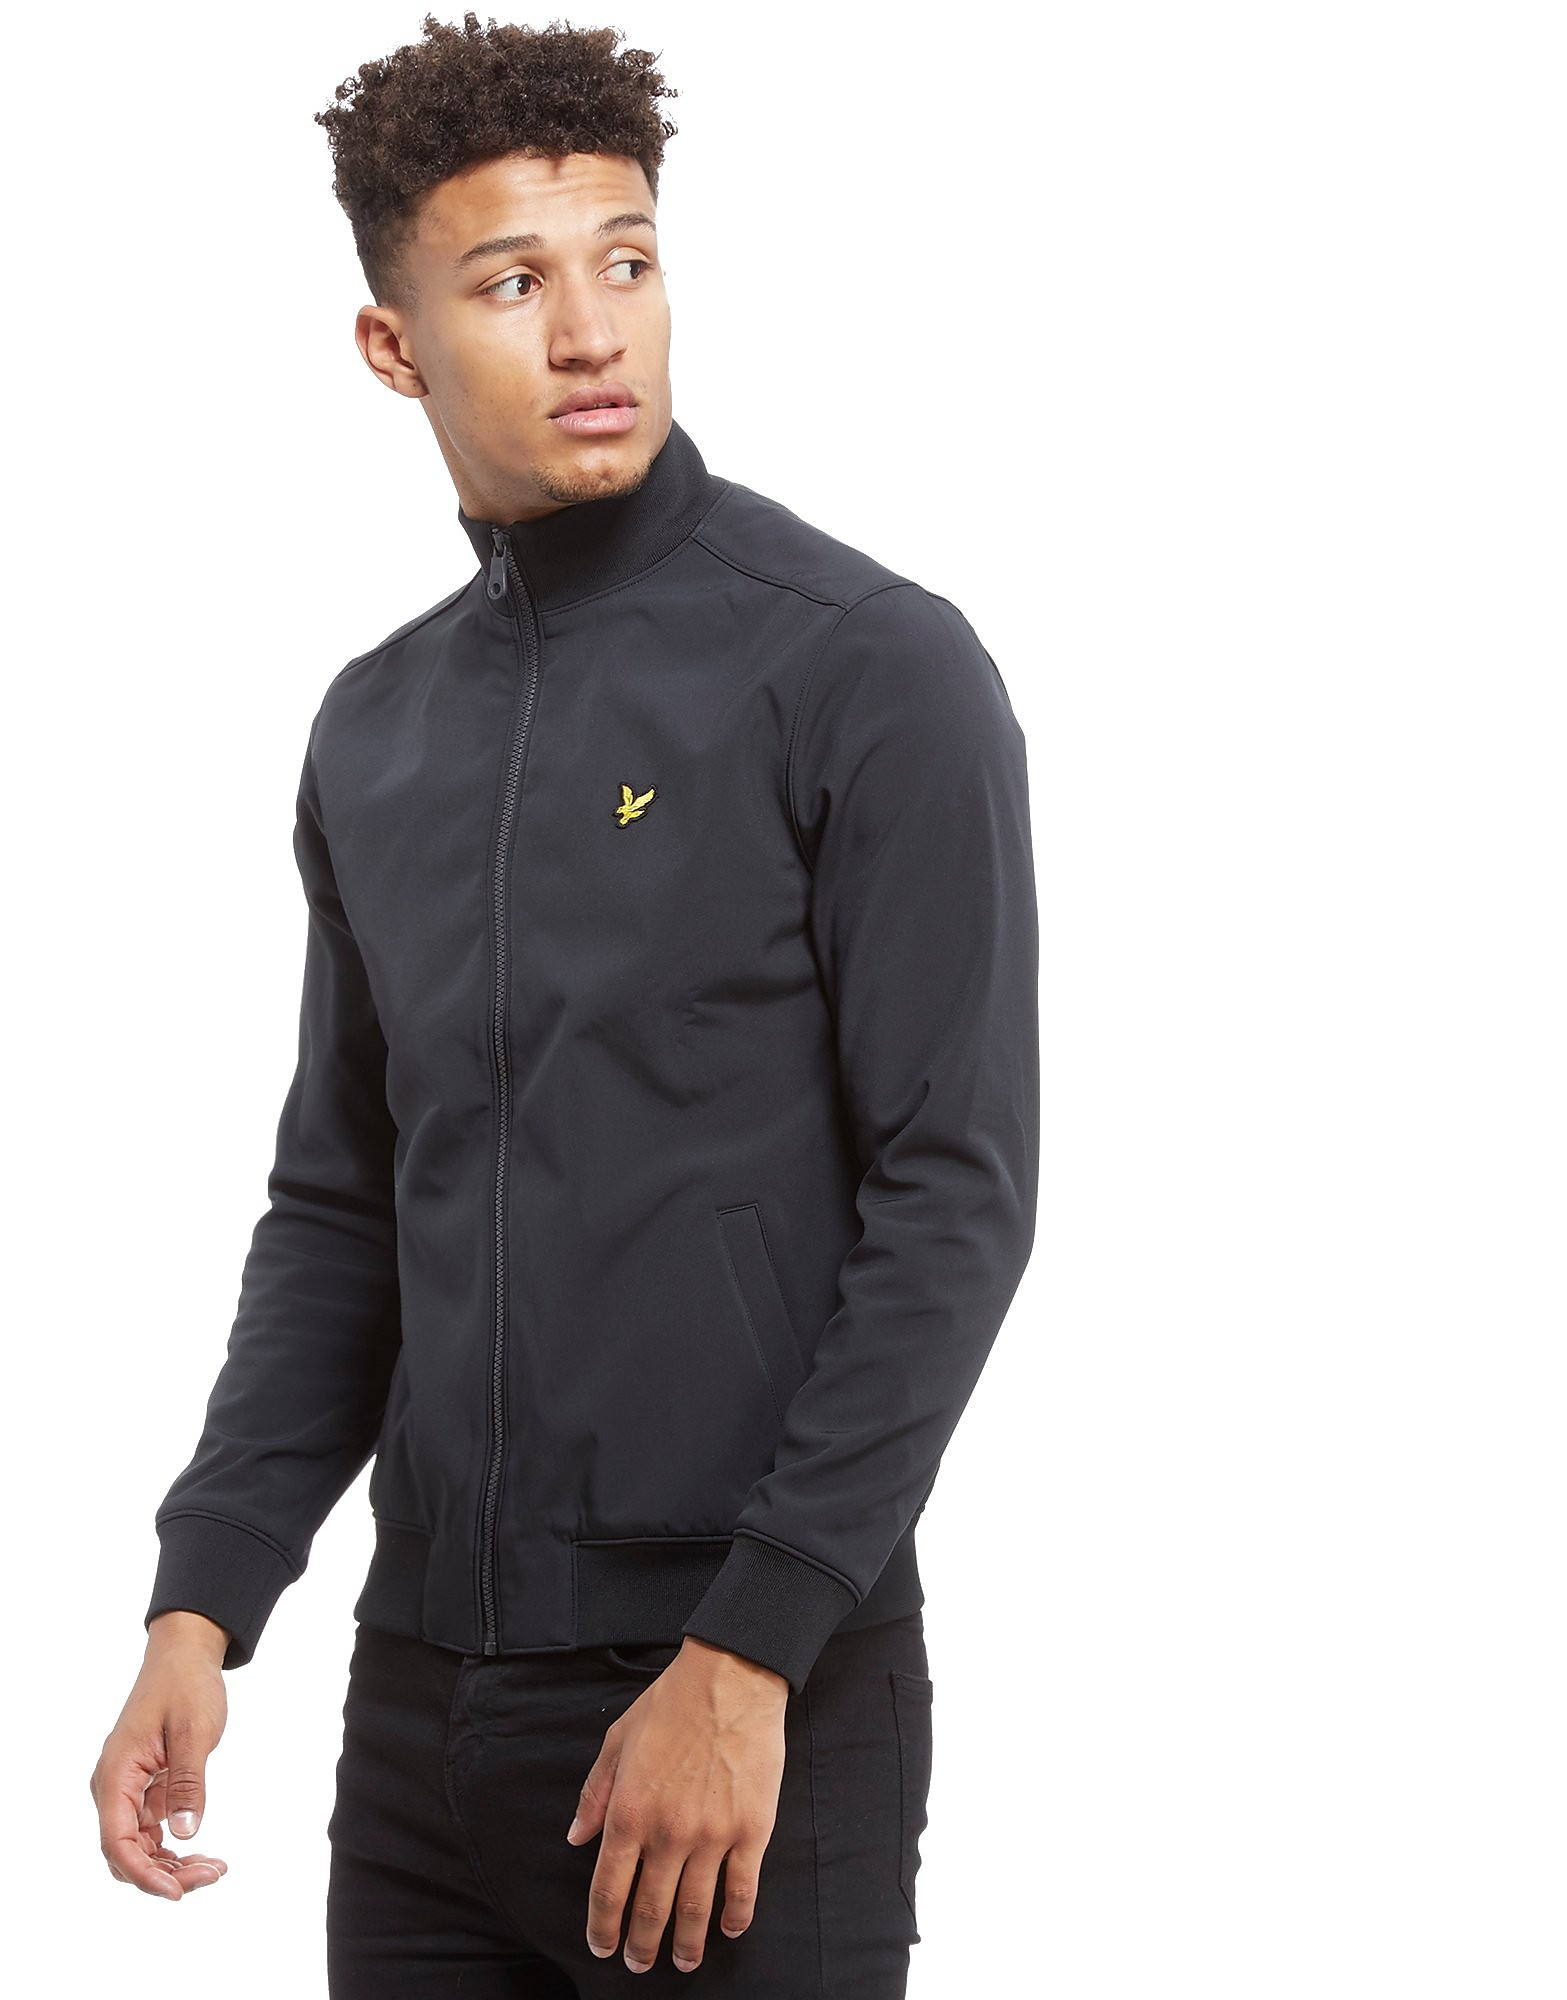 Lyle & Scott Tricot Jacket